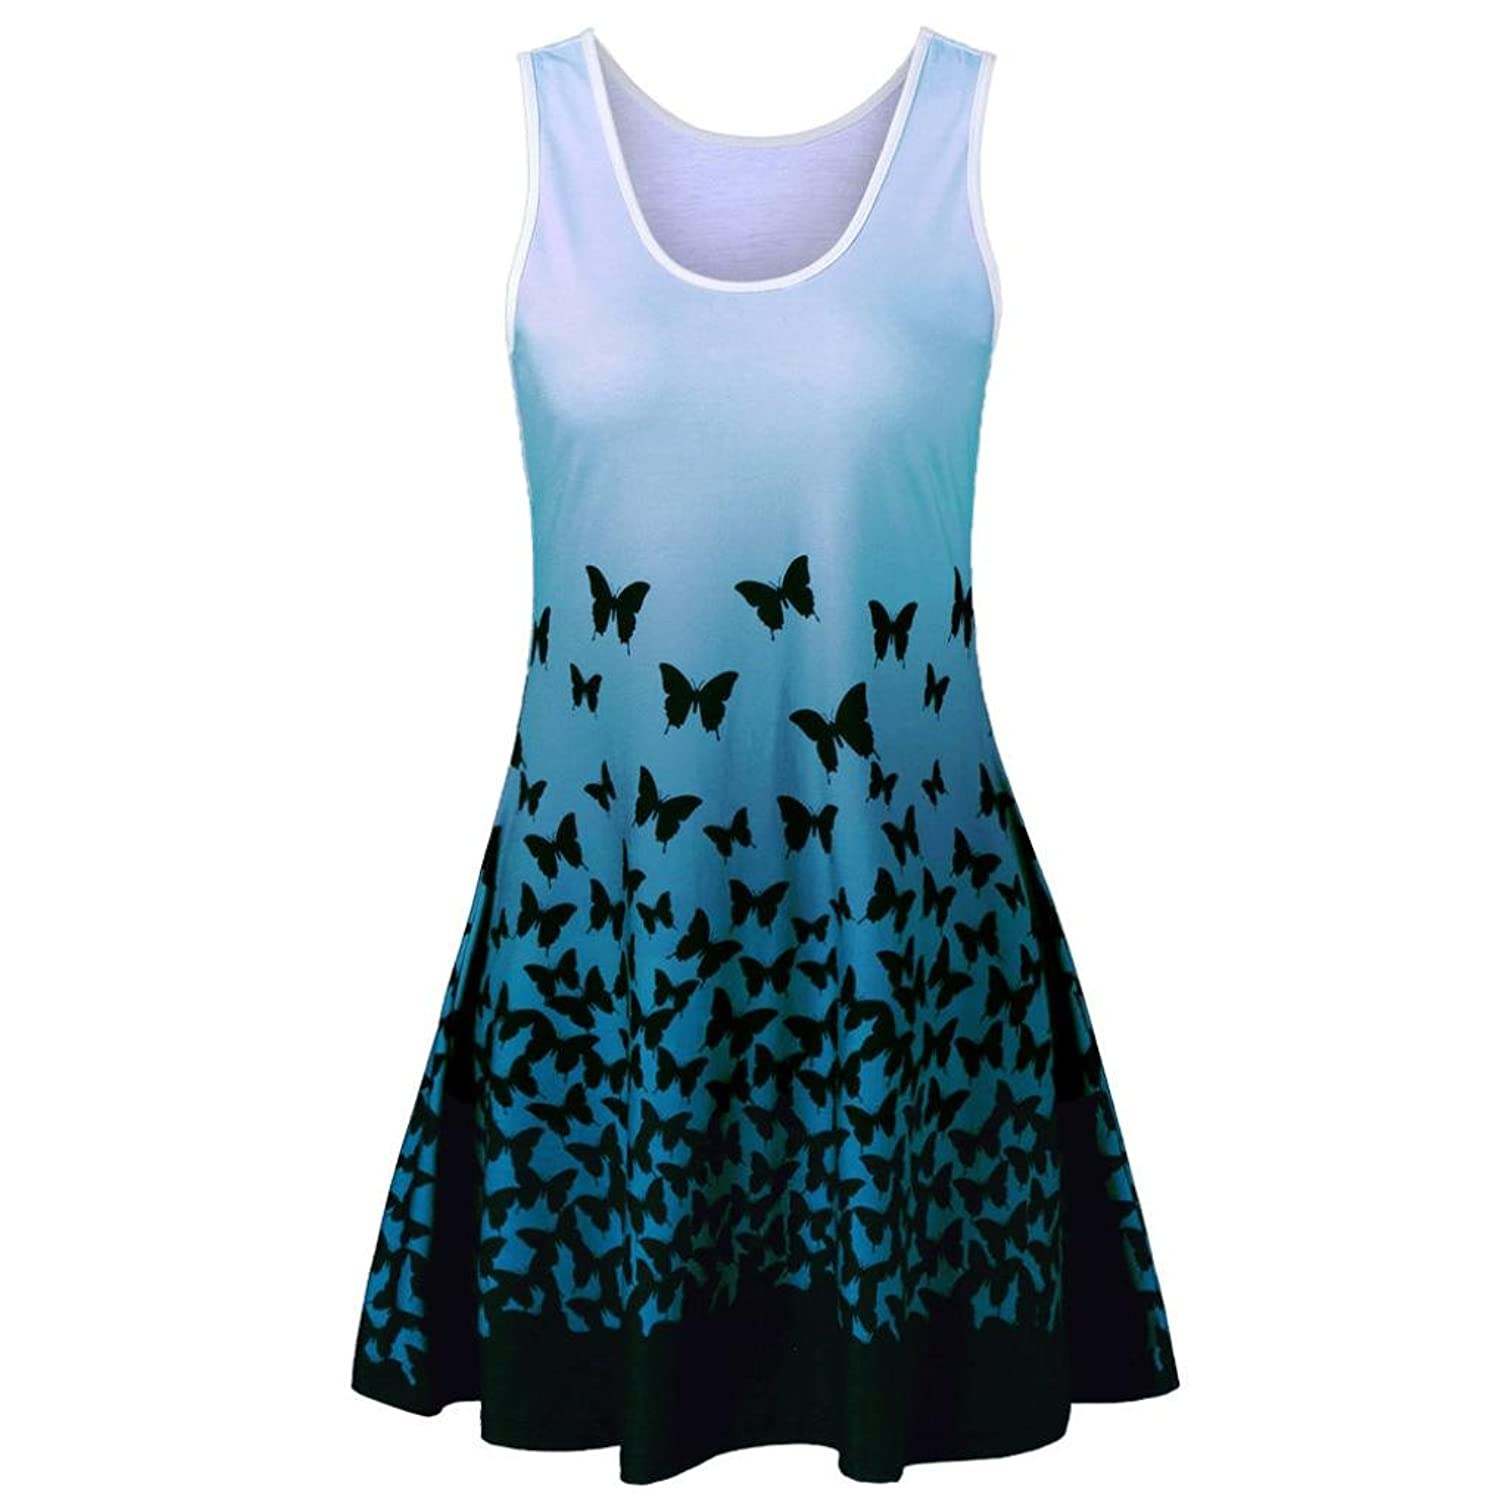 656ae897467f Top1: Beautyfine Clearance Sale! Vintage Dress Womens Butterfly Printing  Casual Sleeveless Party Dress